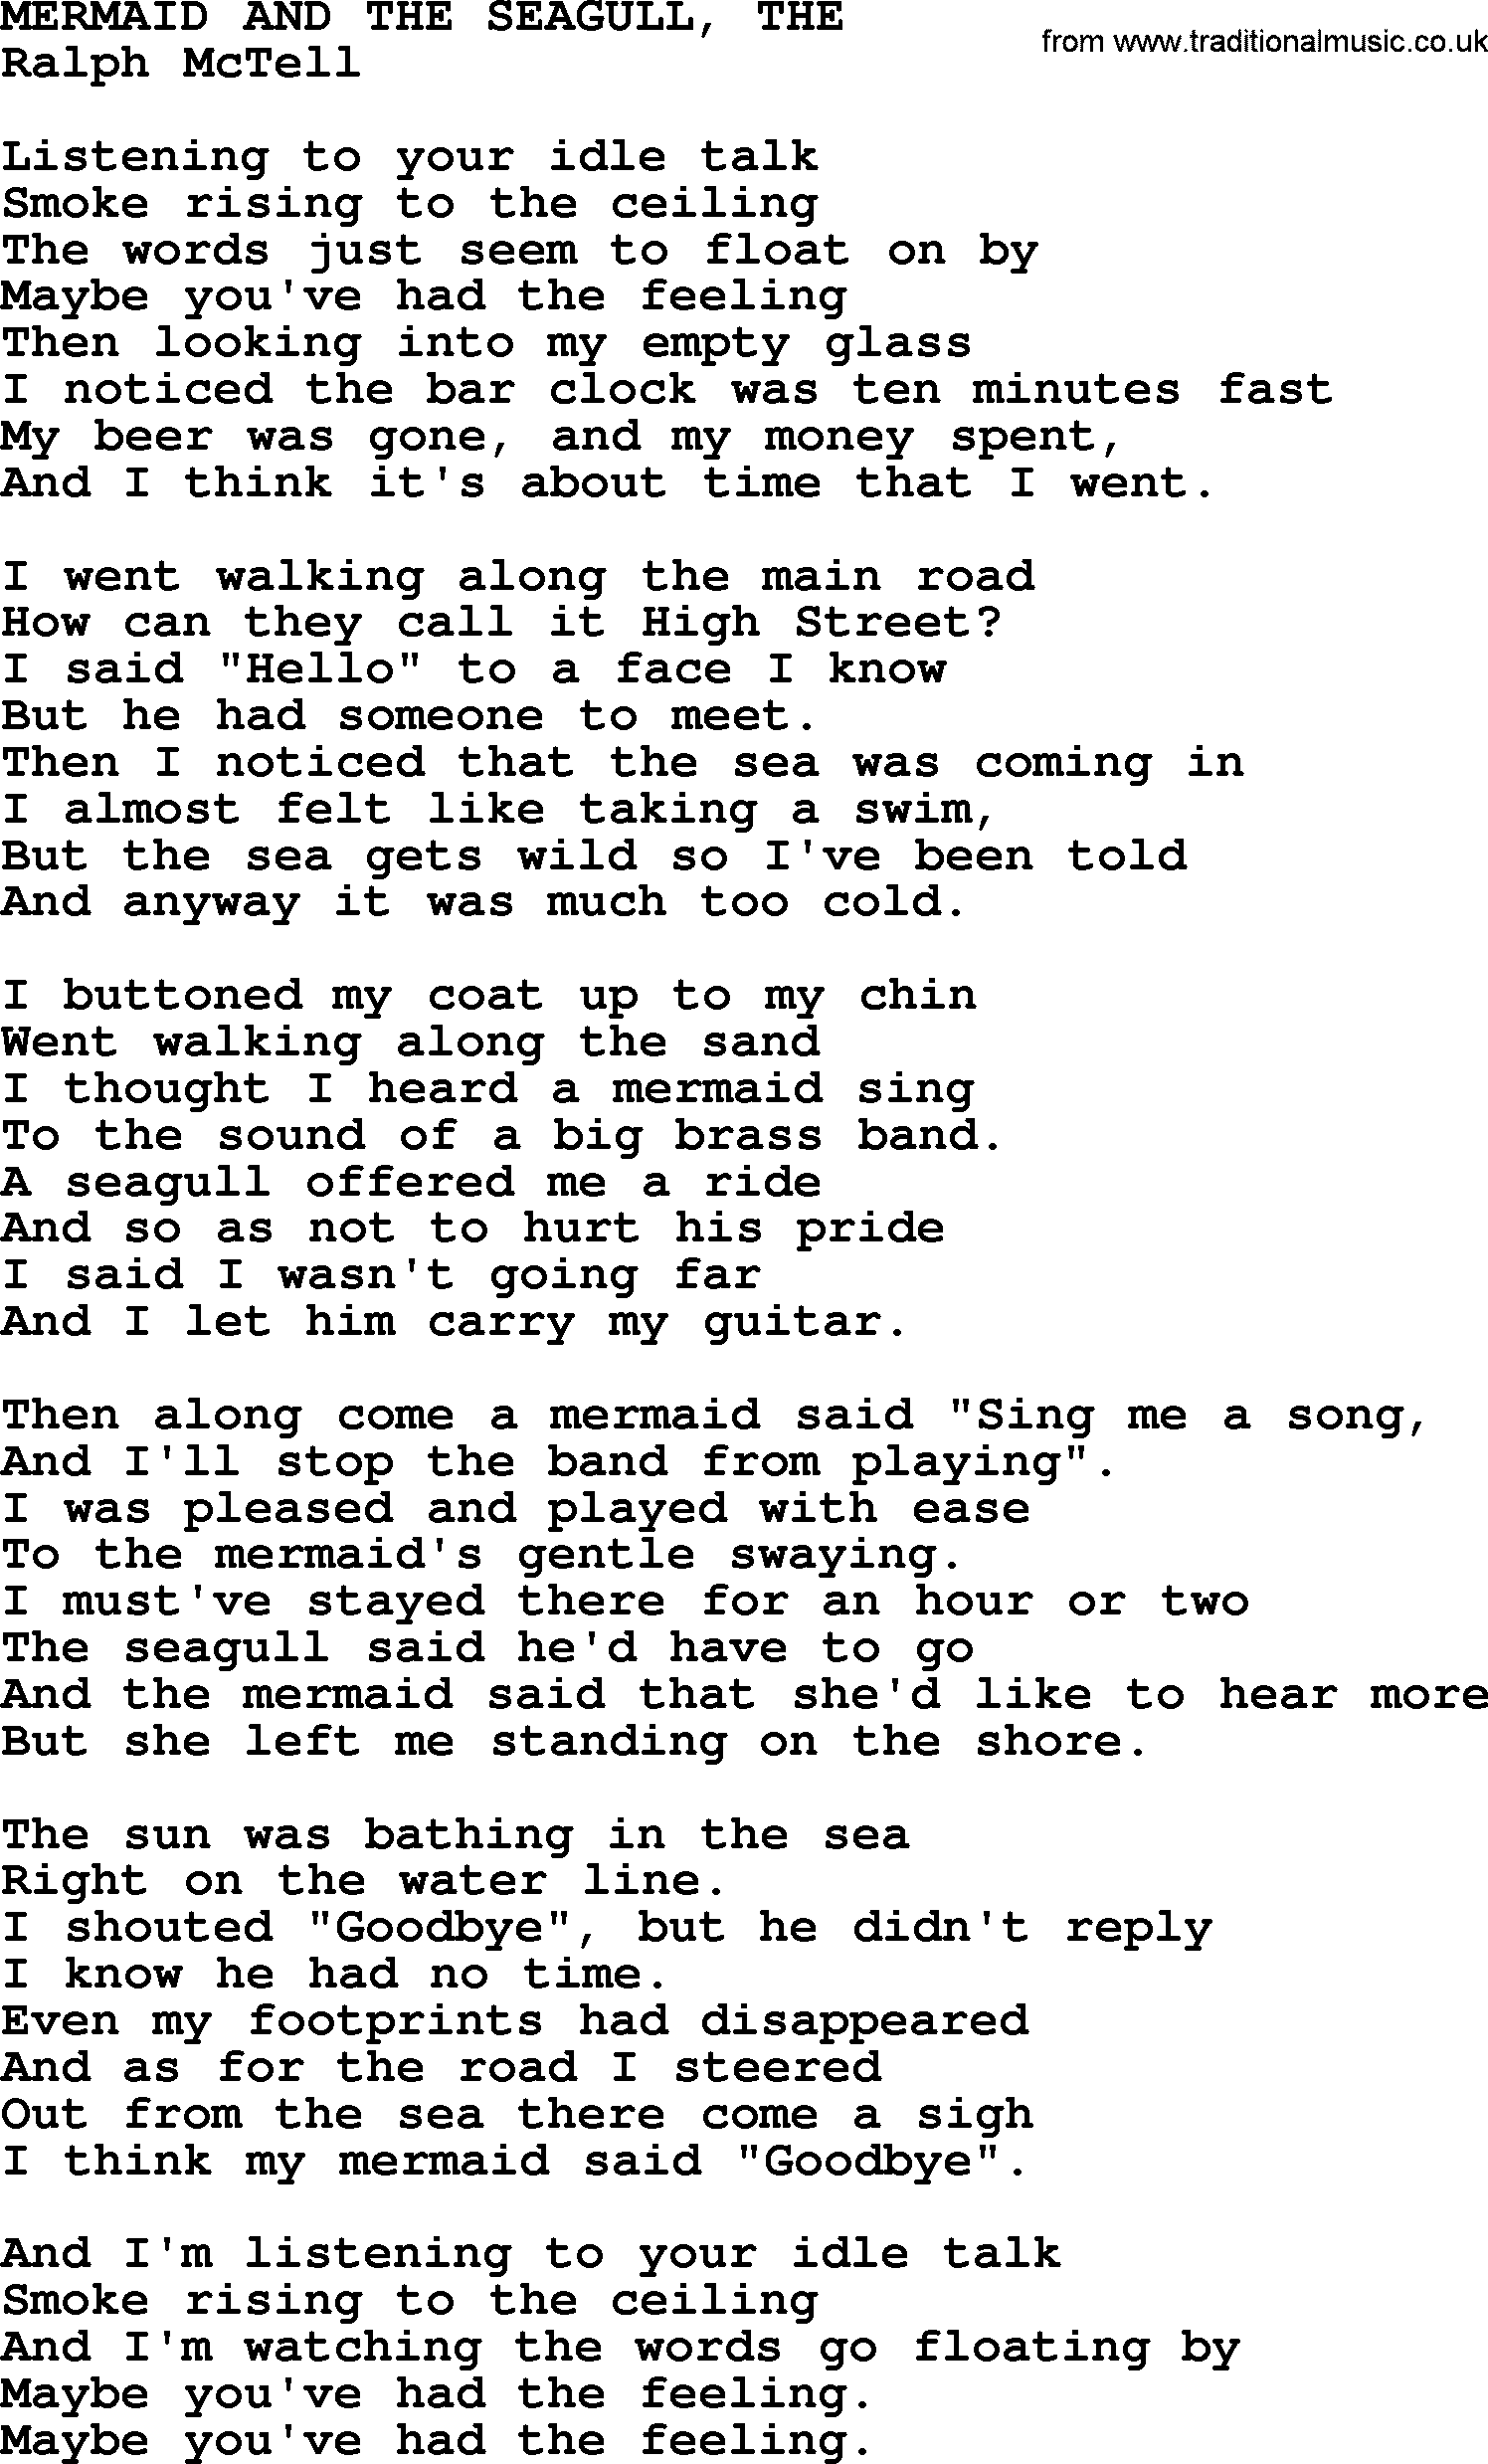 Mermaid and the seagull thetxt by ralph mctell lyrics and chords ralph mctell song mermaid and the seagull the lyrics hexwebz Image collections